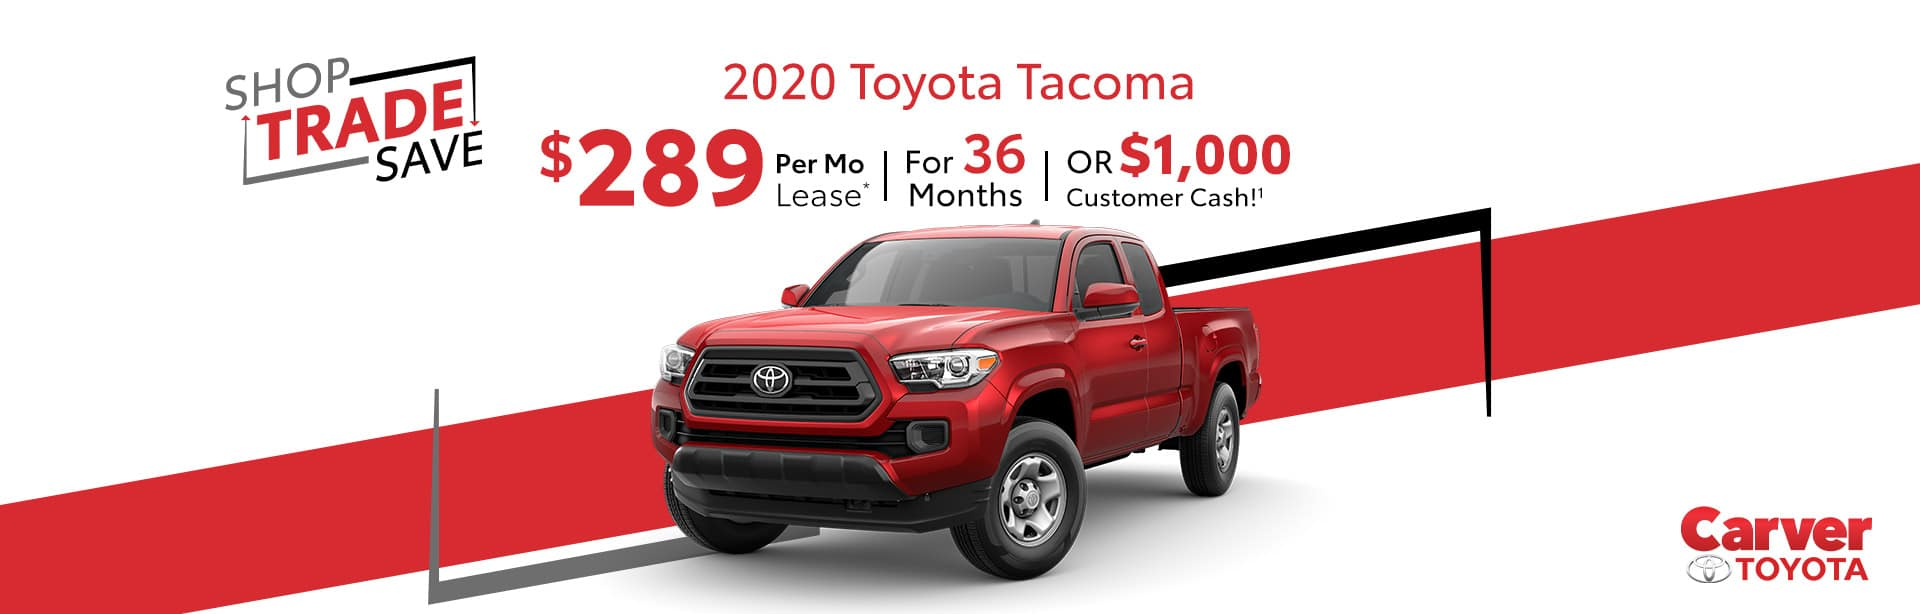 Lease a New Tacoma for $289 a month near Franklin, Indiana